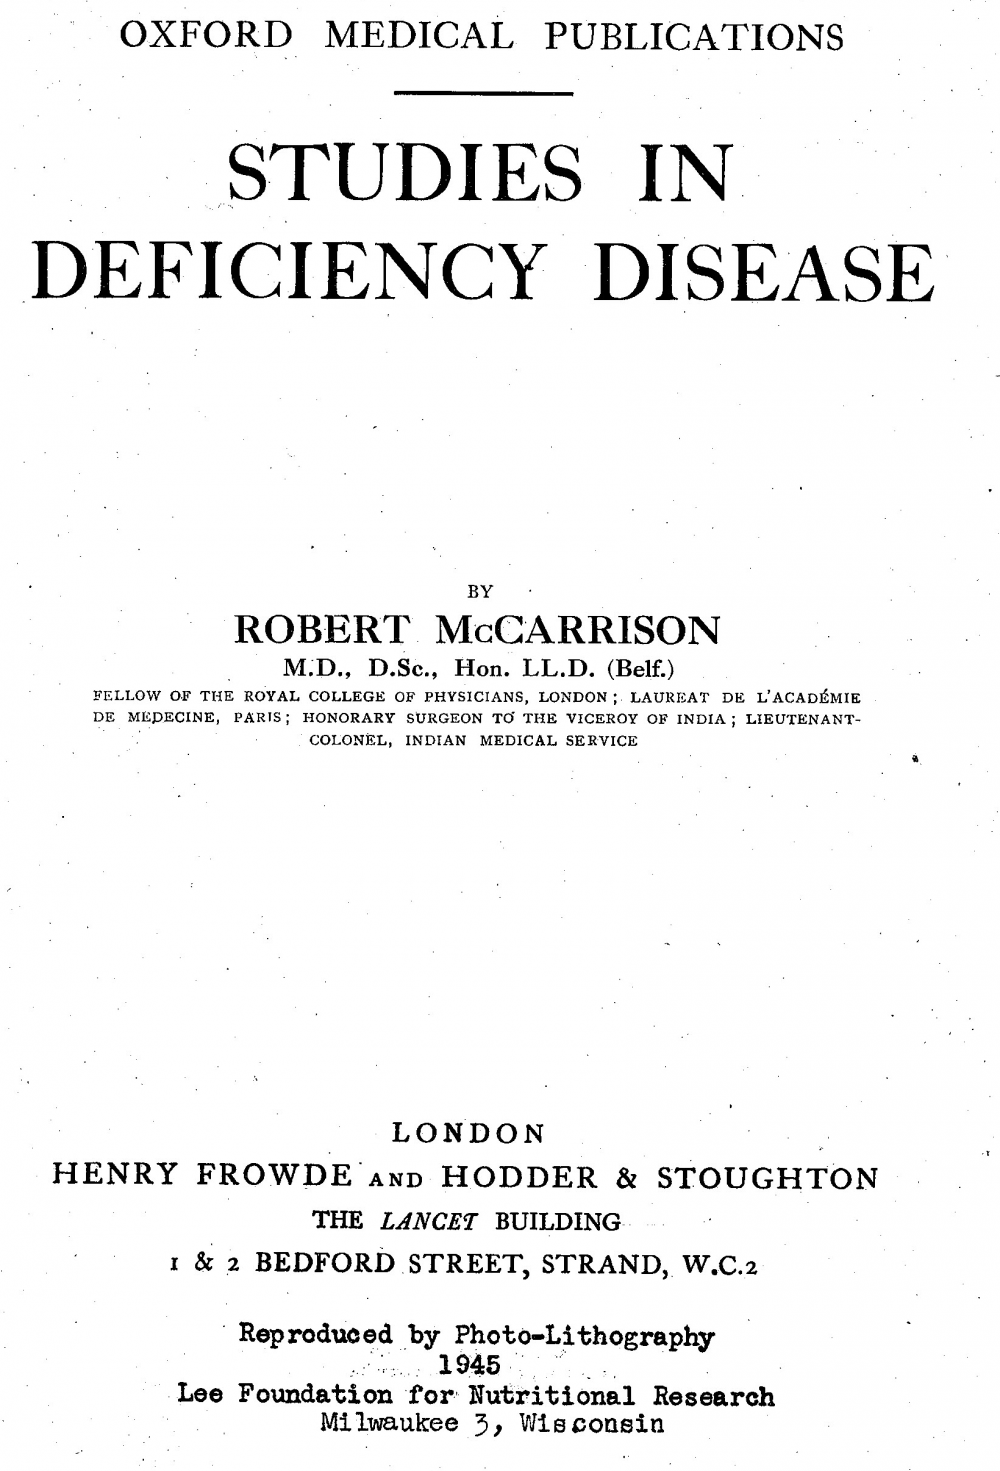 Studies in Deficiency Disease front page